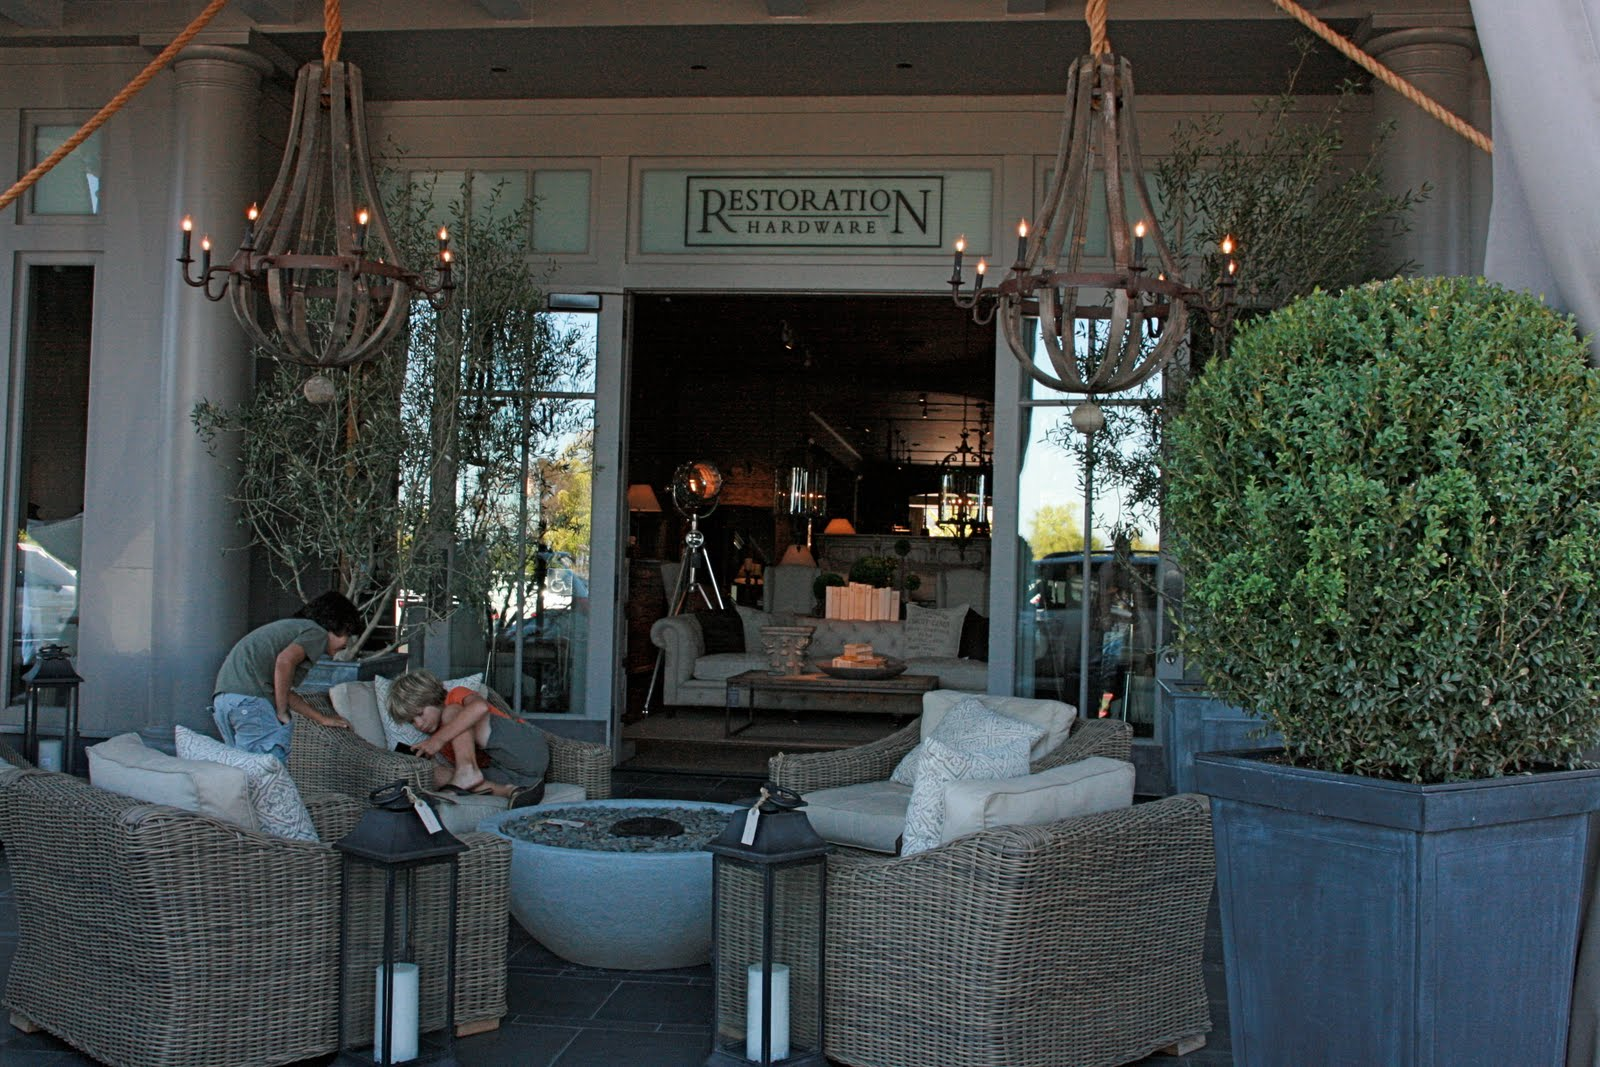 Vignette Design A Visit To Restoration Hardware 39 S Flagship Store